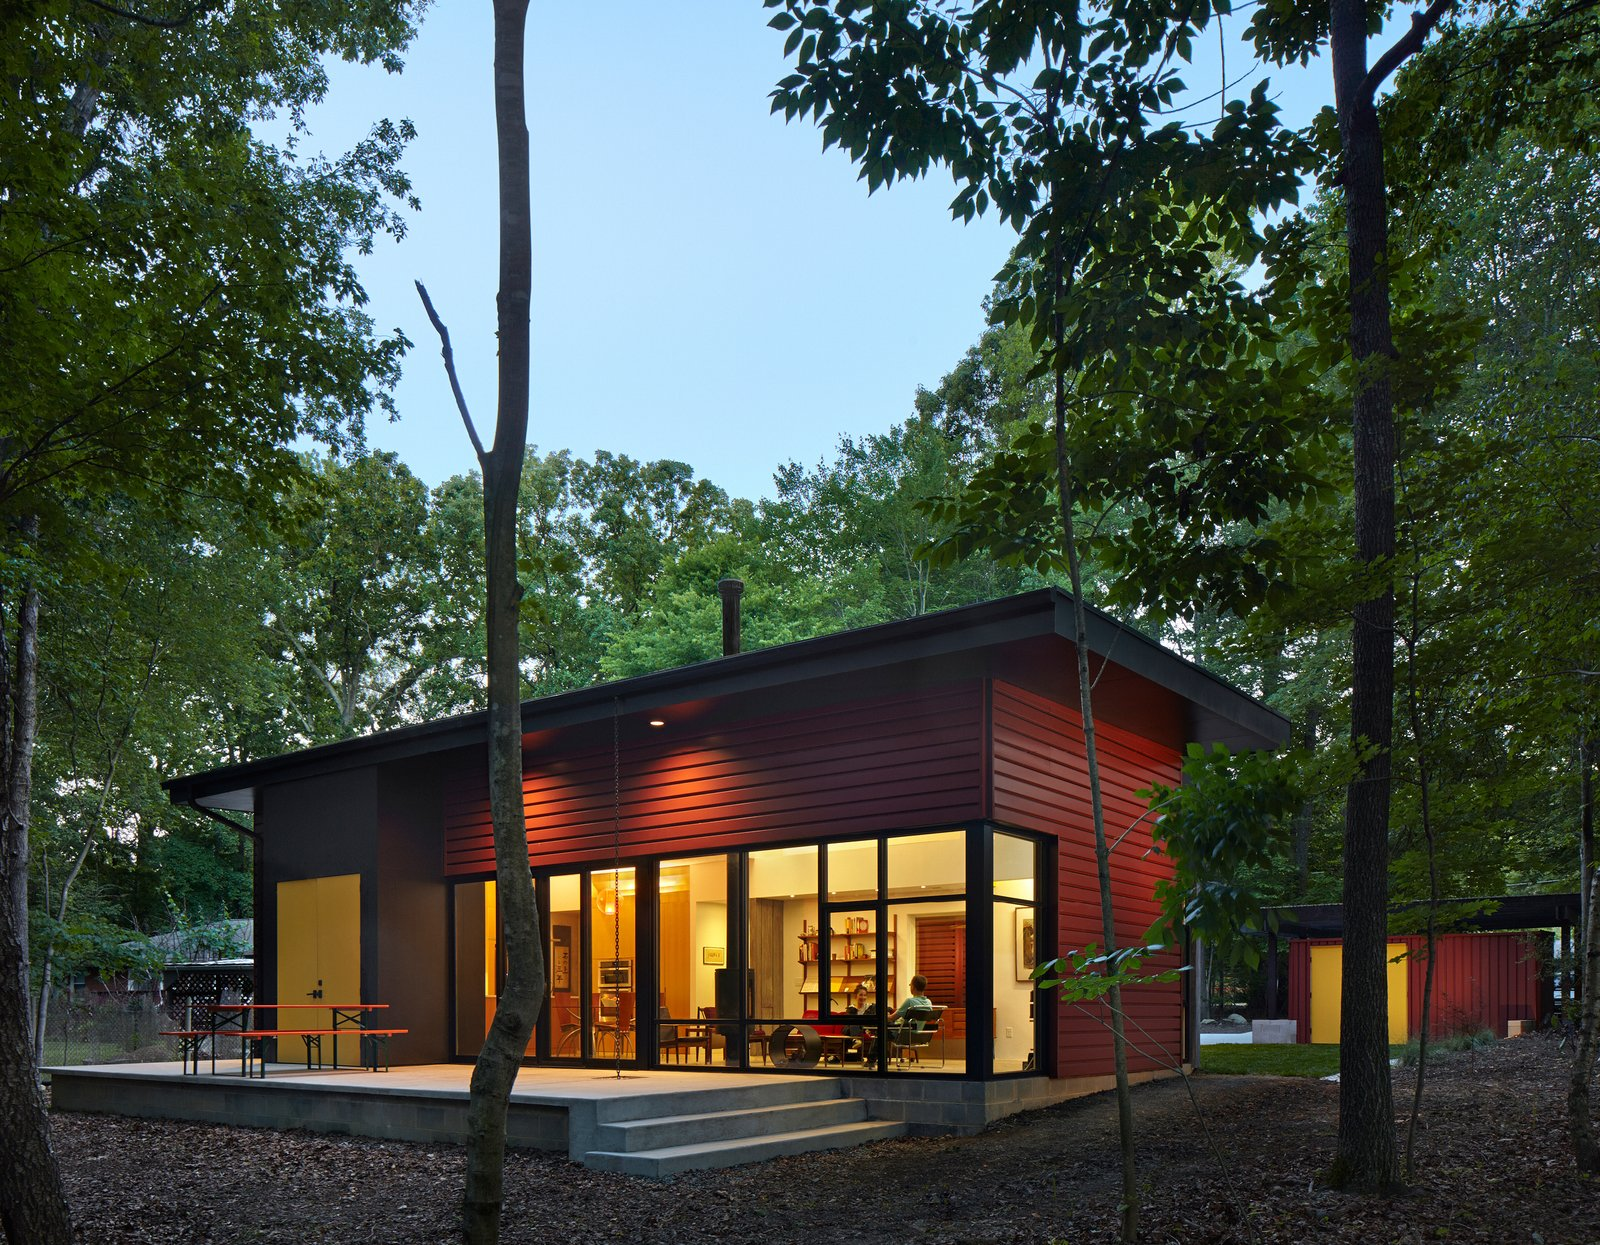 """Nestled in a forest, the residence consists of three volumes. The patio, enhanced by a German-made beer garden table, is an extension of the living room floor, creating an indoor-outdoor living space. """"It's one way a small space can be made to feel larger,"""" says architect Jason W. Hart. All of the exterior doors are painted marigold, providing a friendly pop of color. Tagged: Exterior, Metal Siding Material, and House.  Tiny Homes by Scott Saunders from This Light-Filled Metallic Home Embraces Its Wooded Site"""